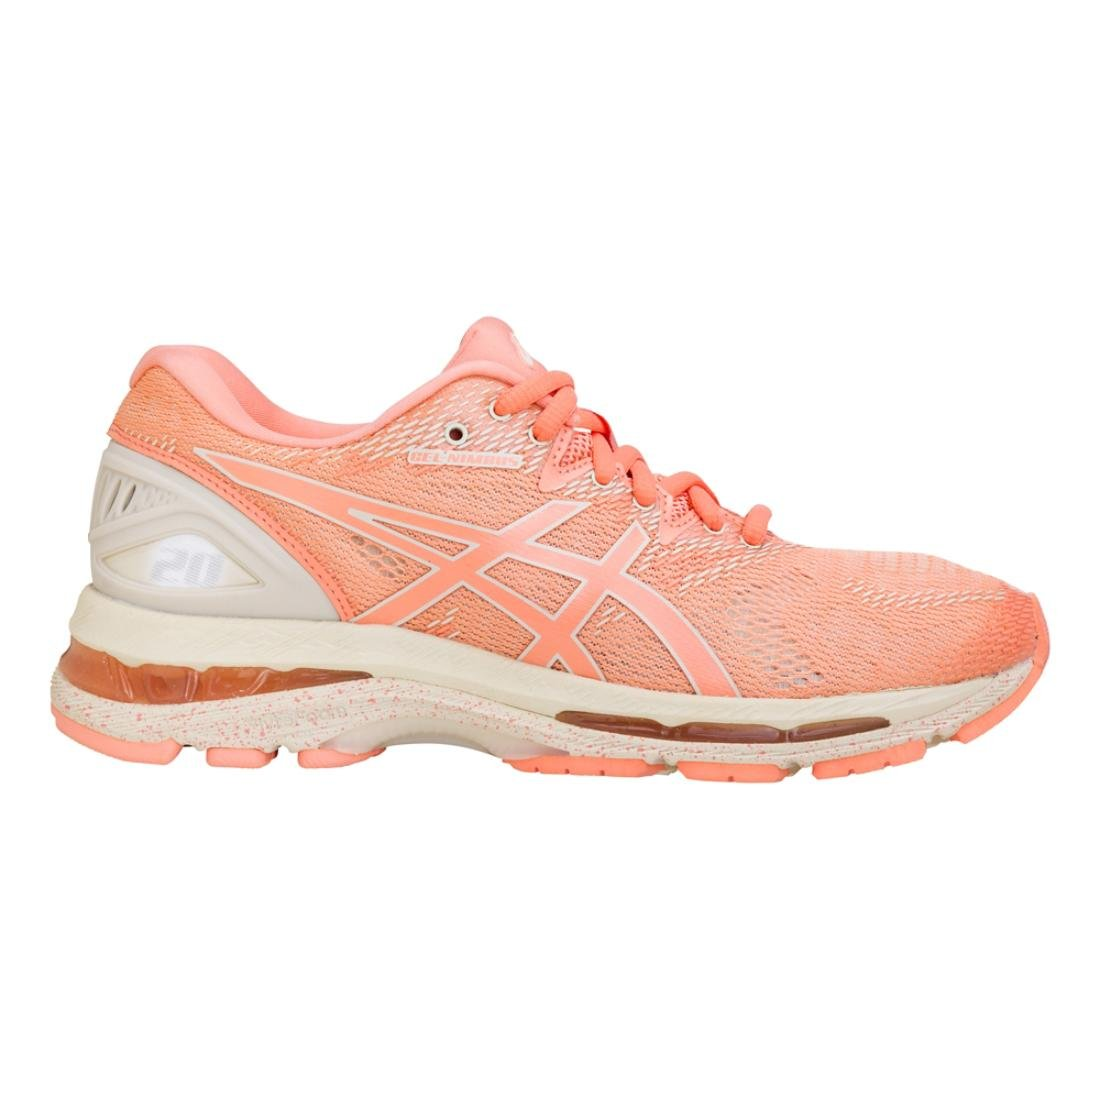 ASICS Women's Gel-Nimbus 20 Running Shoe B071Z79TN7 7.5 B(M) US|Cherry/Coffee/Blossom